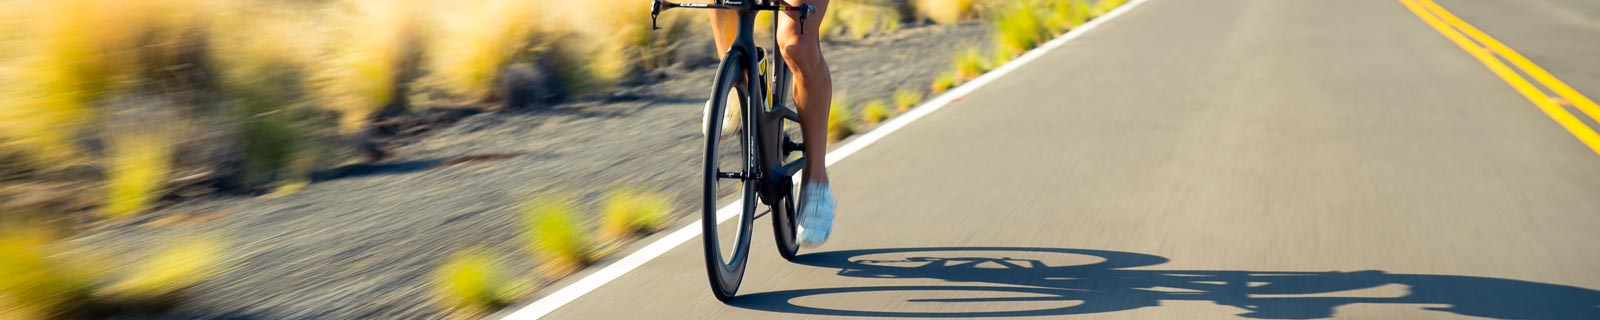 Triathlon and time trial bikes